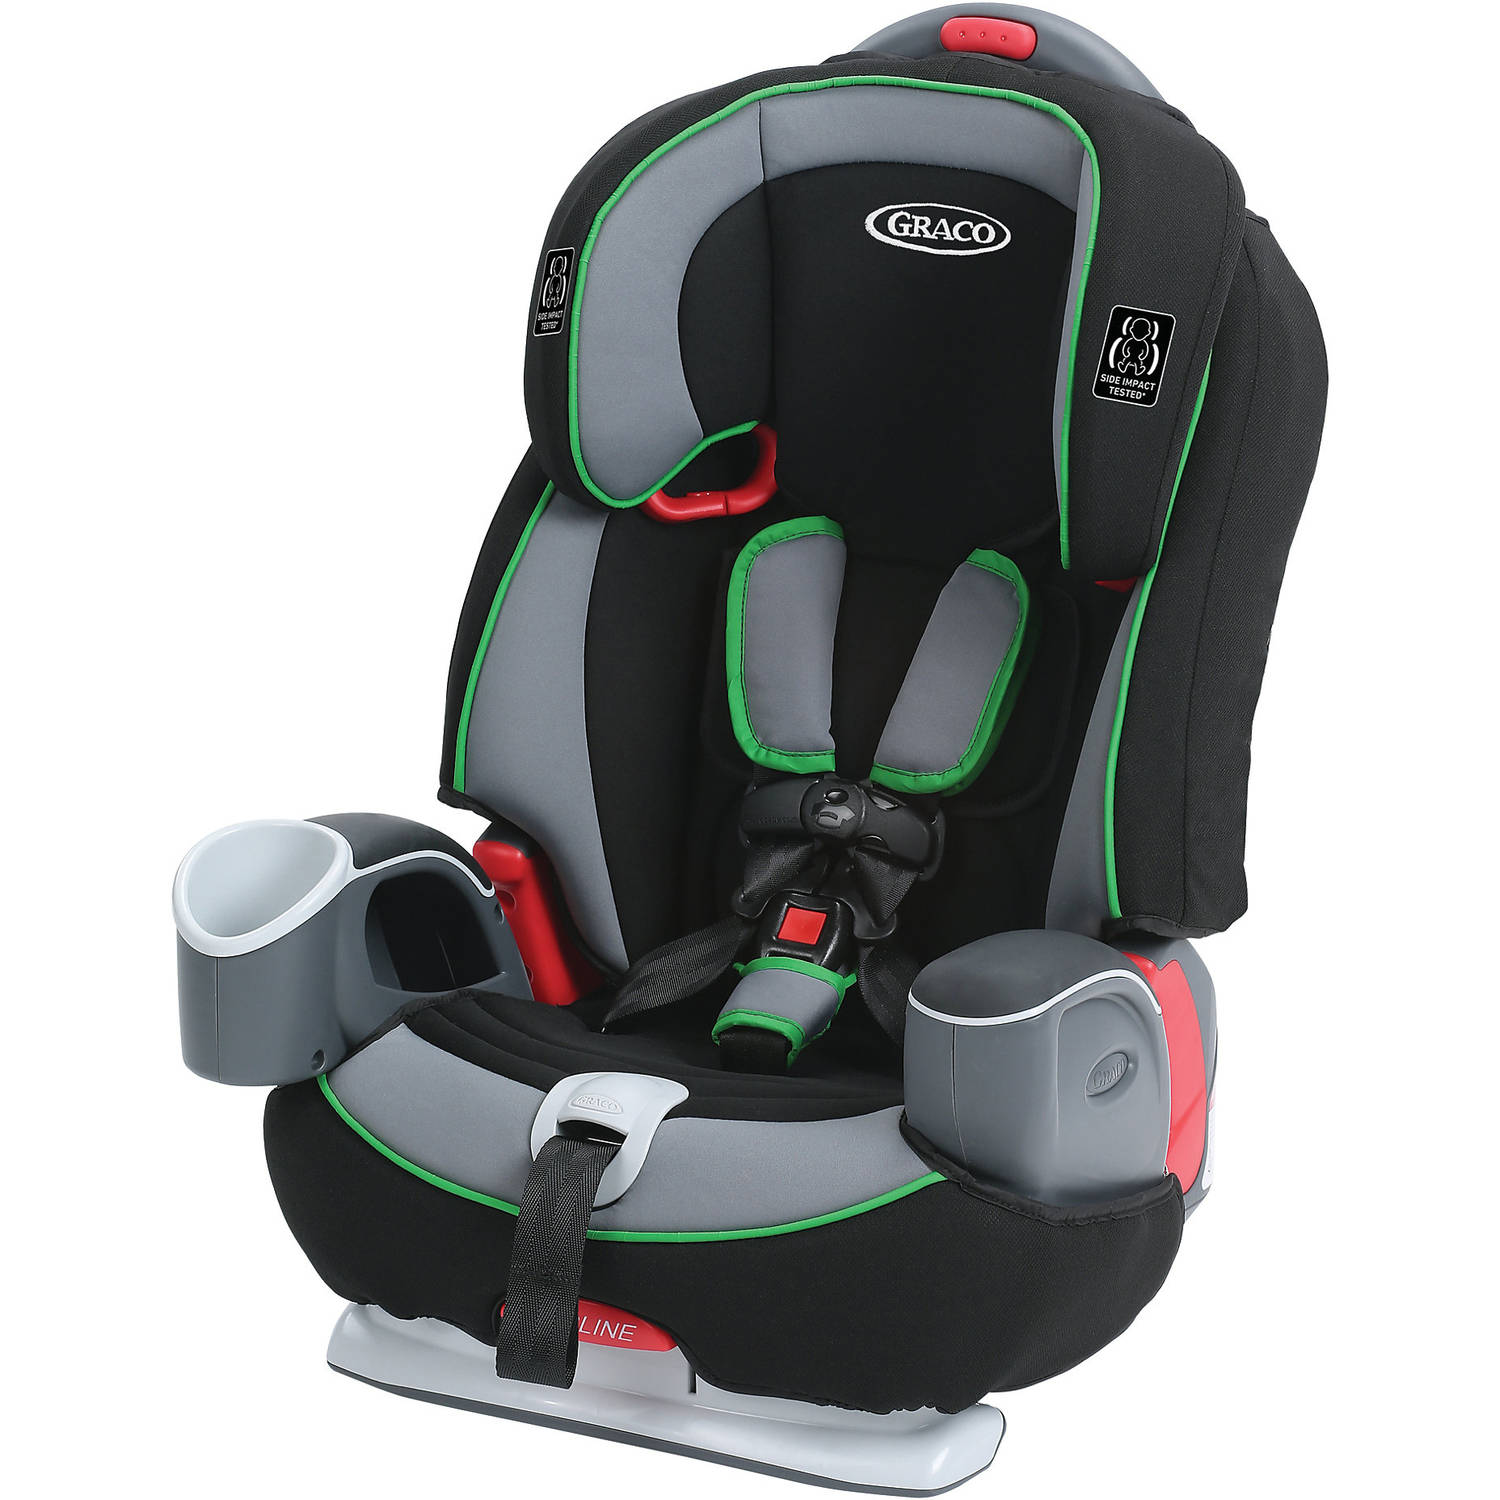 Graco Nautilus 65 3-in-1 Harness Booster Car Seat, Fern